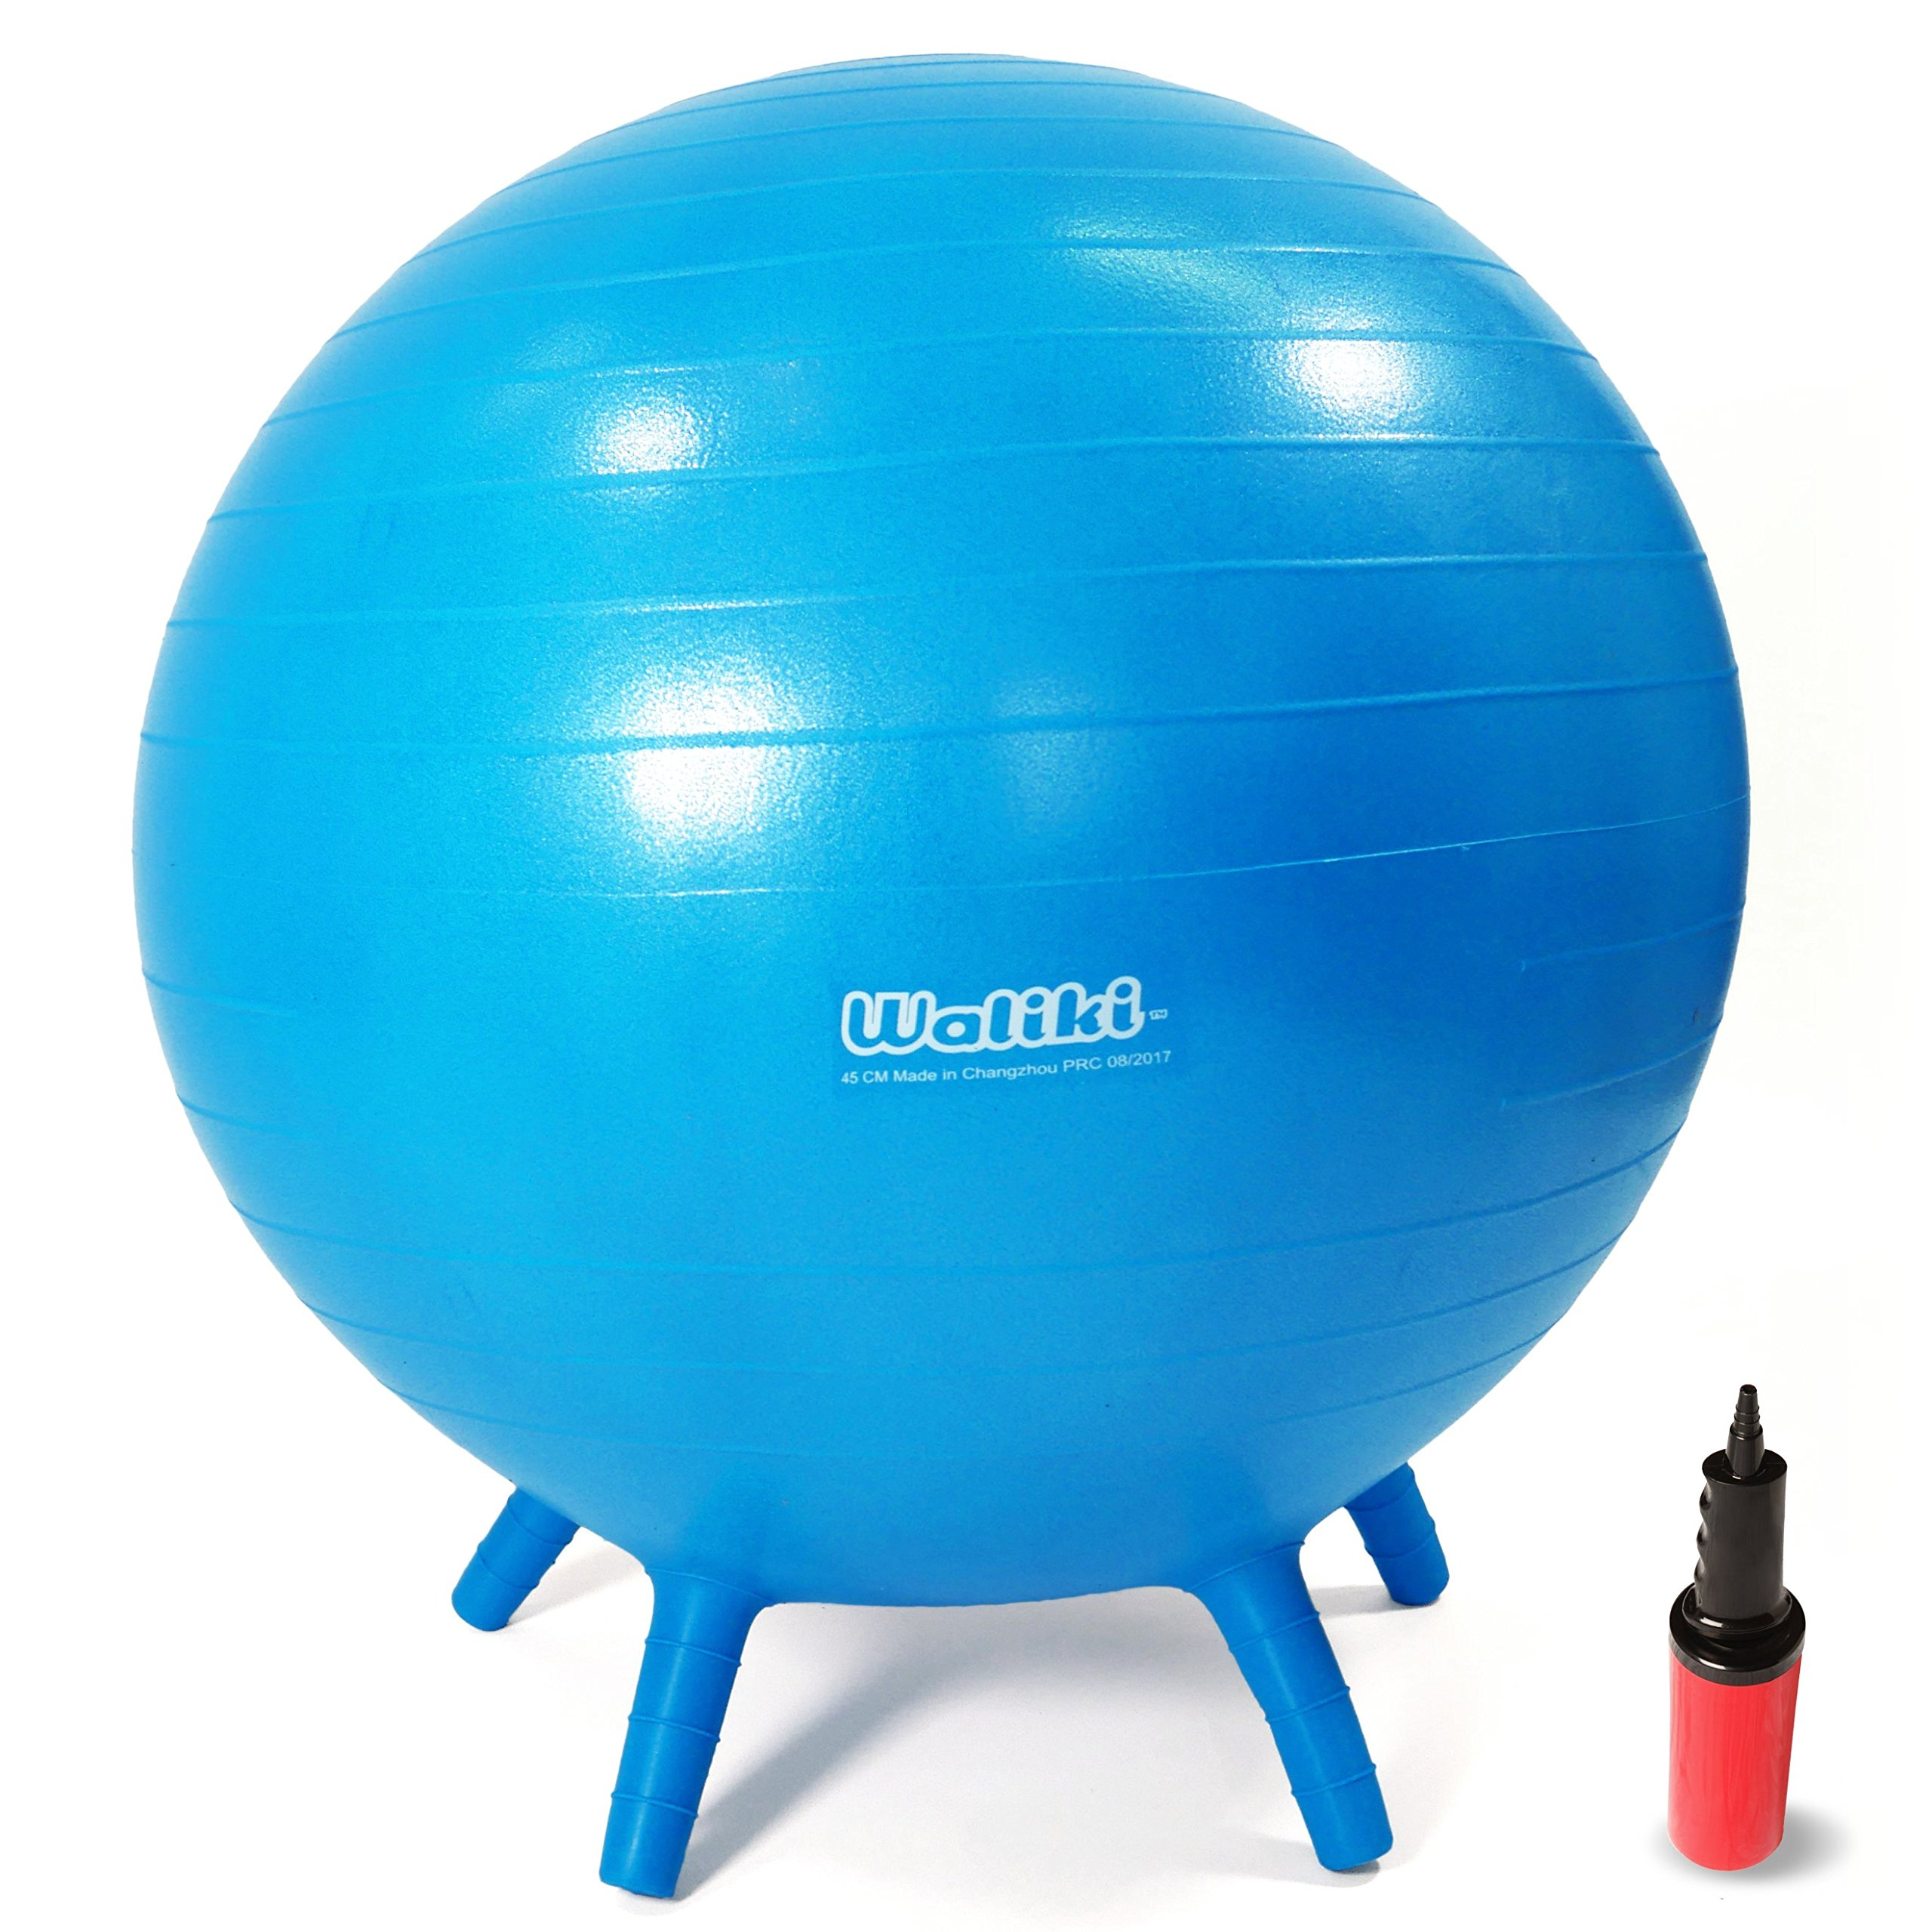 WALIKI Adult Size Chair Ball with Stability Legs | Balance Ball Chair School & Office | 30''/75CM Blue by WALIKI